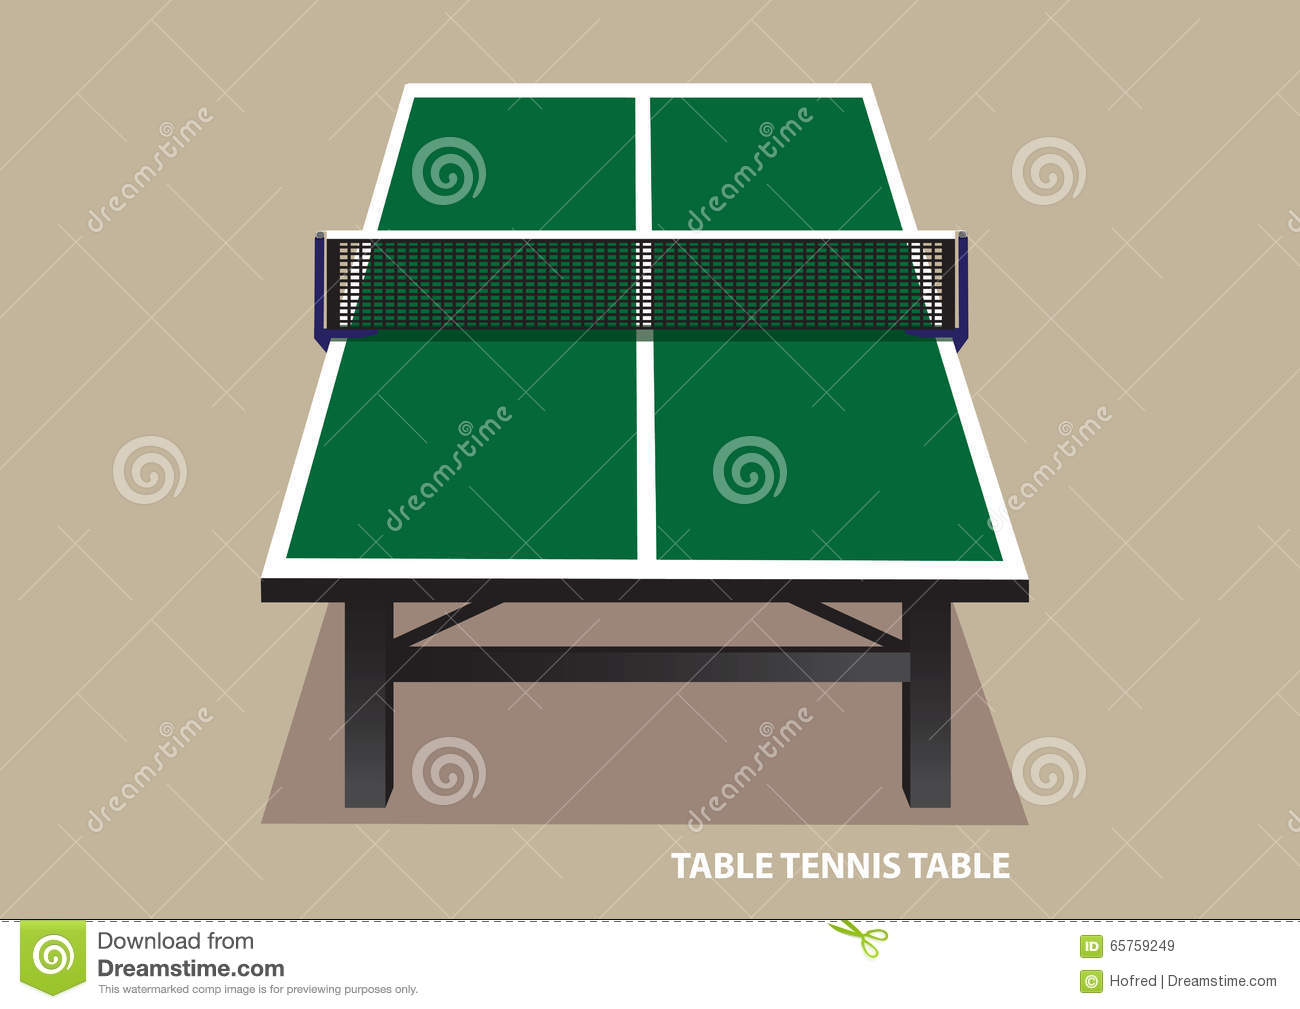 Table tennis table top view stock illustrations 21 table for Html table th always on top